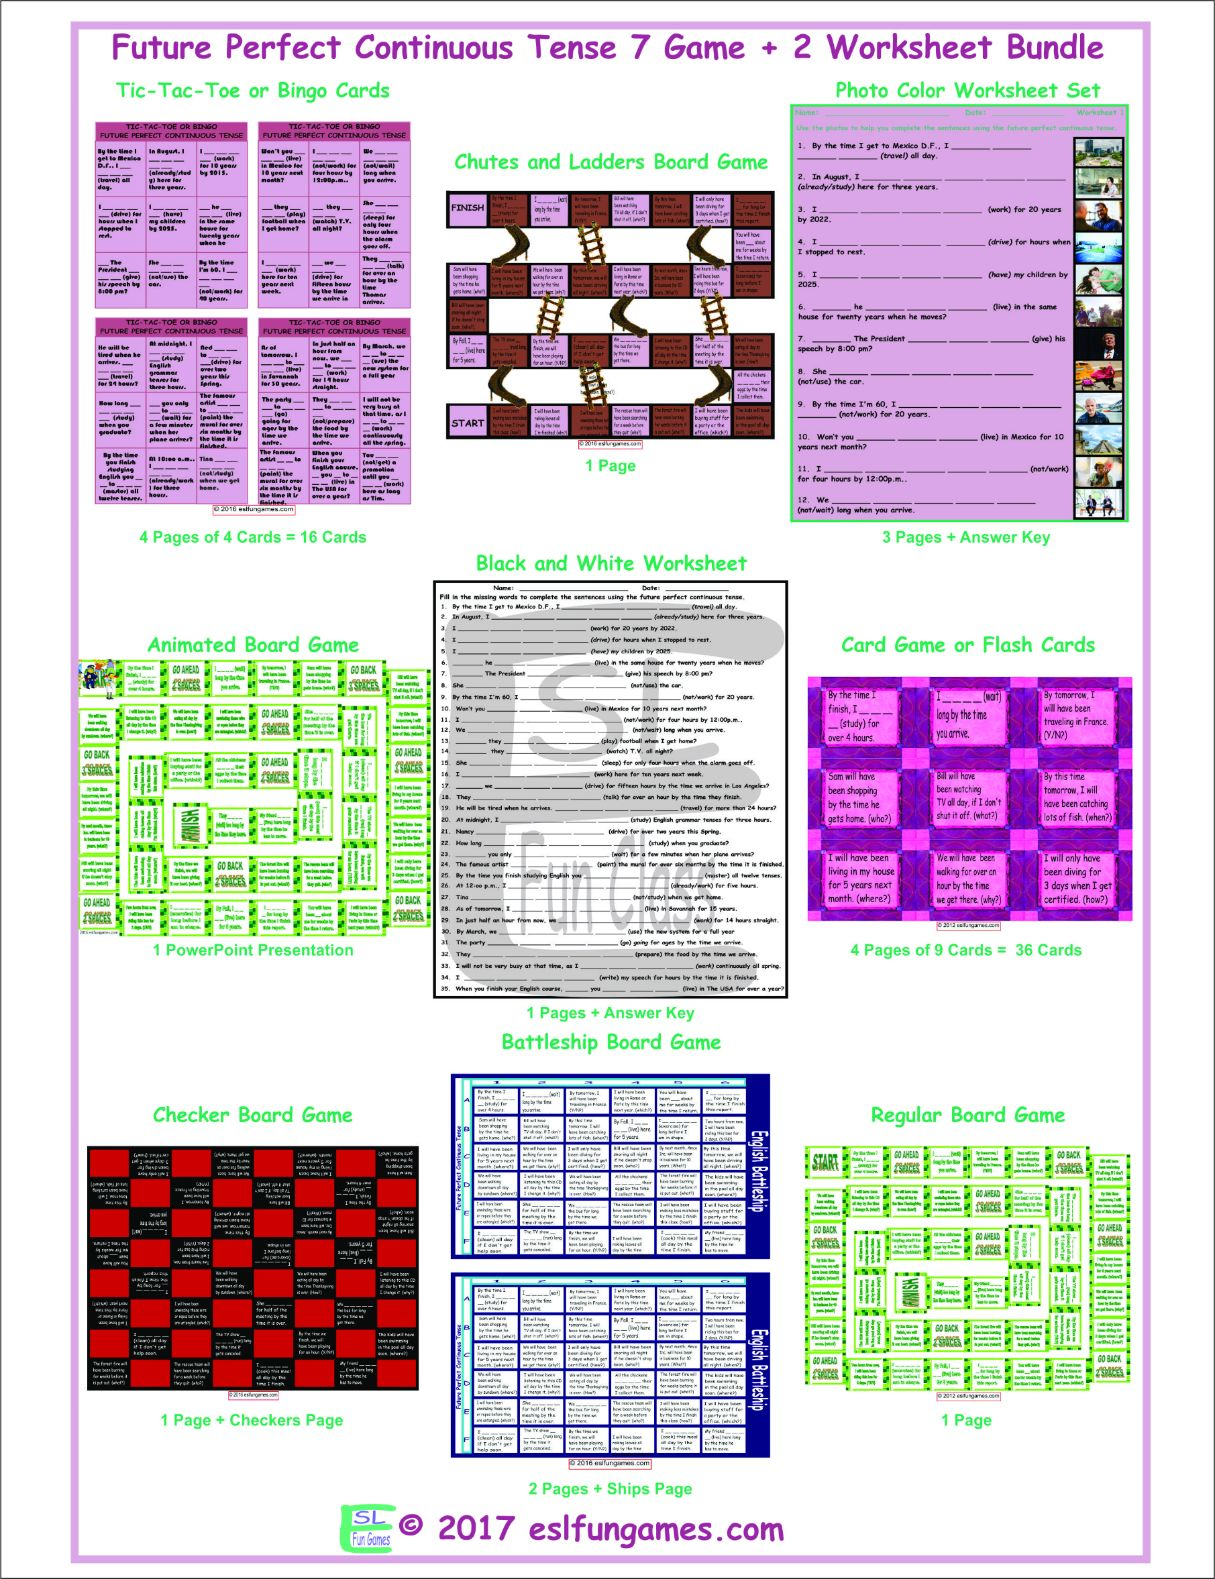 Future Perfect Continuous Tense 7 Game Plus 2 Worksheet